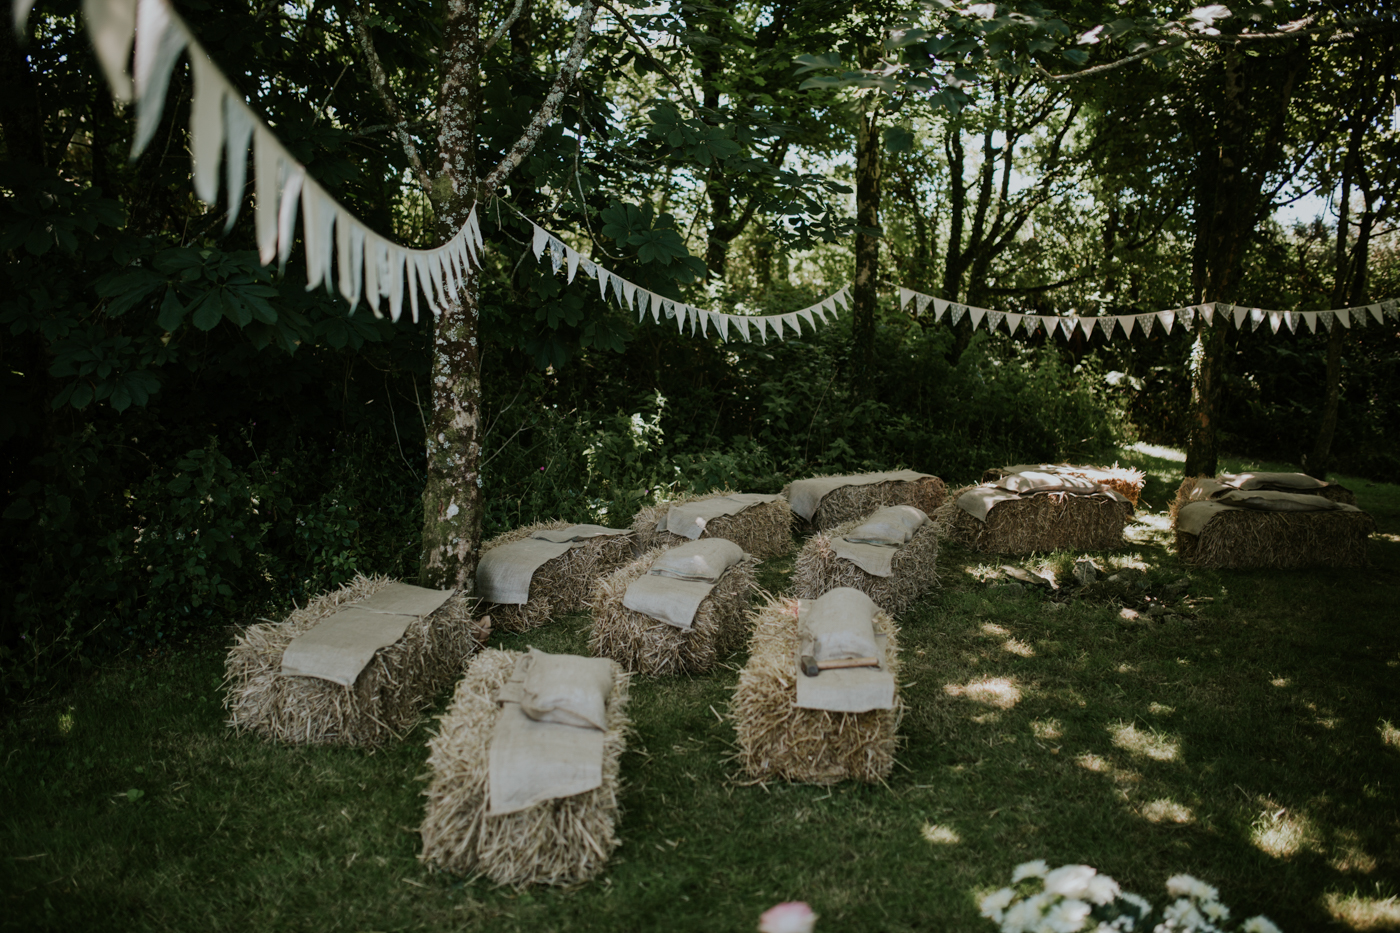 woodland themed wedding in a greenhouse enchanted brides photo